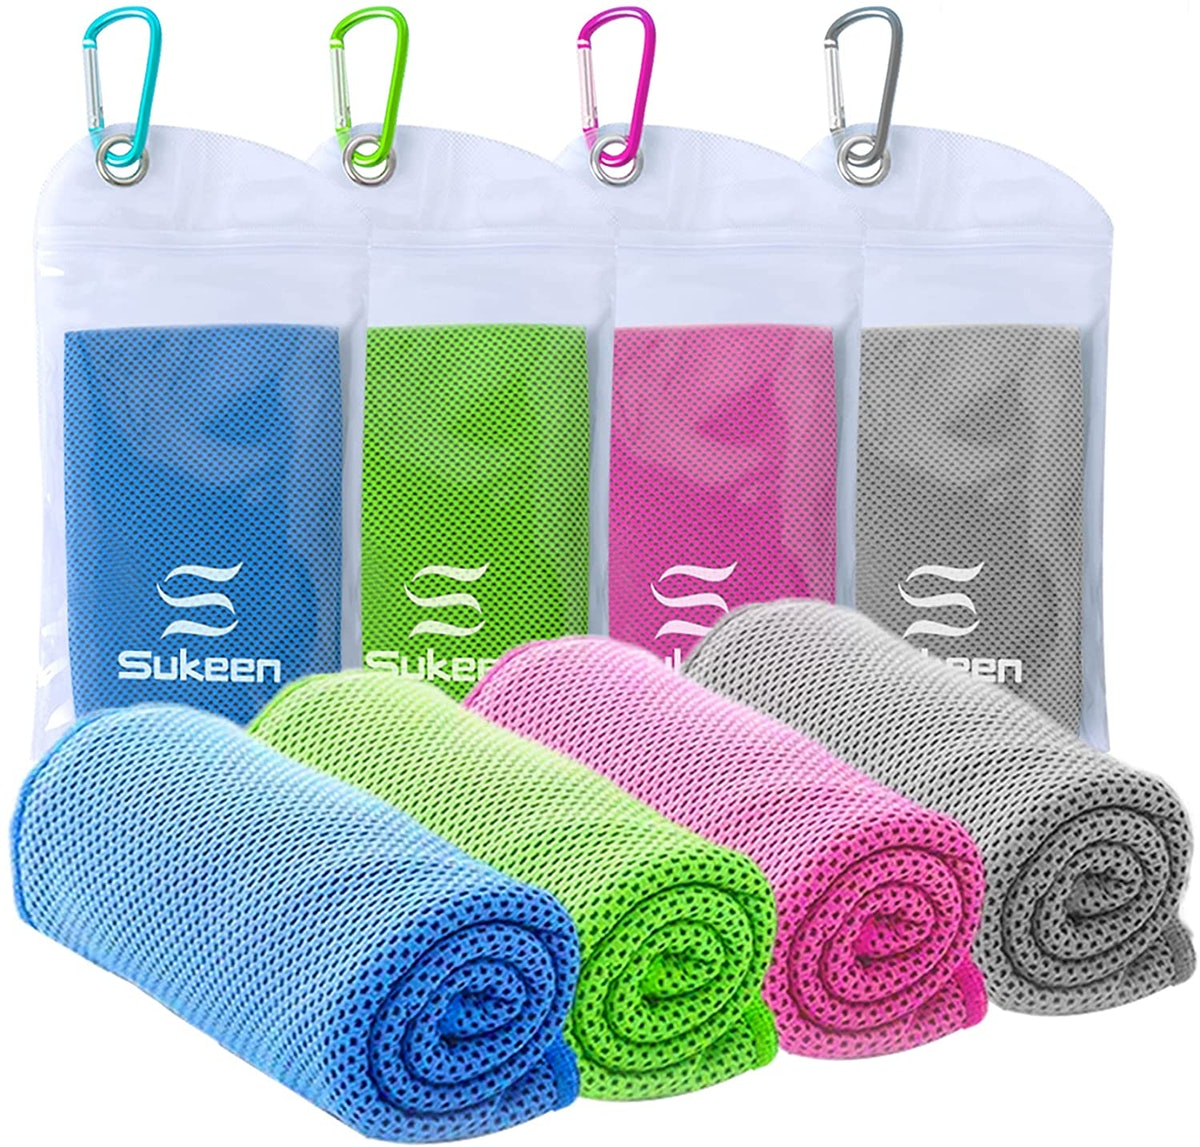 Sukeen Cooling Towel (4 Pack)